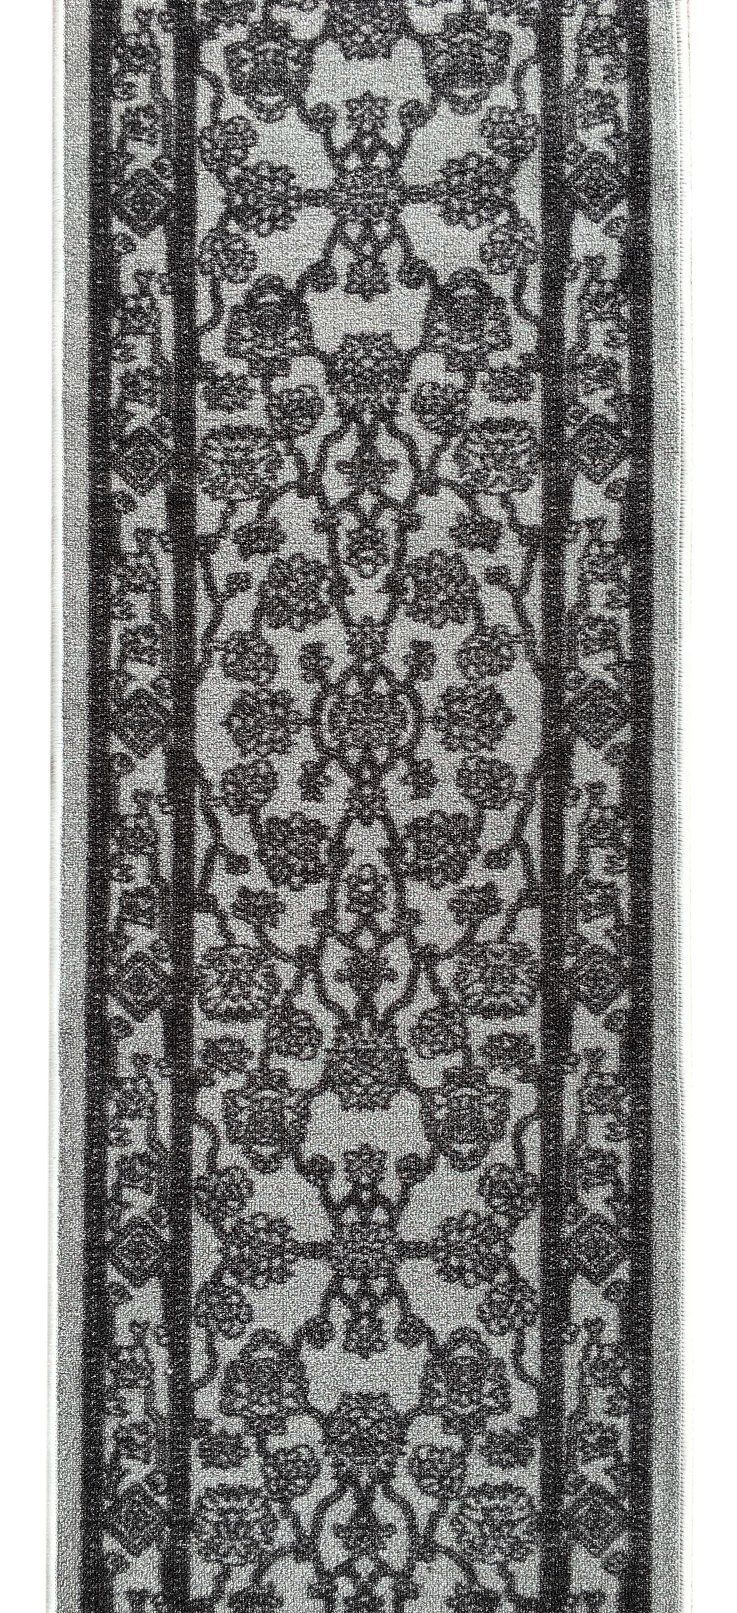 Kapaqua Custom Size Grey Egyptian Print Traditional Persian Rubber Backed Nonslip Hallway Stair Runner Rug Carpet 22 Inc Rugs On Carpet Stair Runner Rug Runner